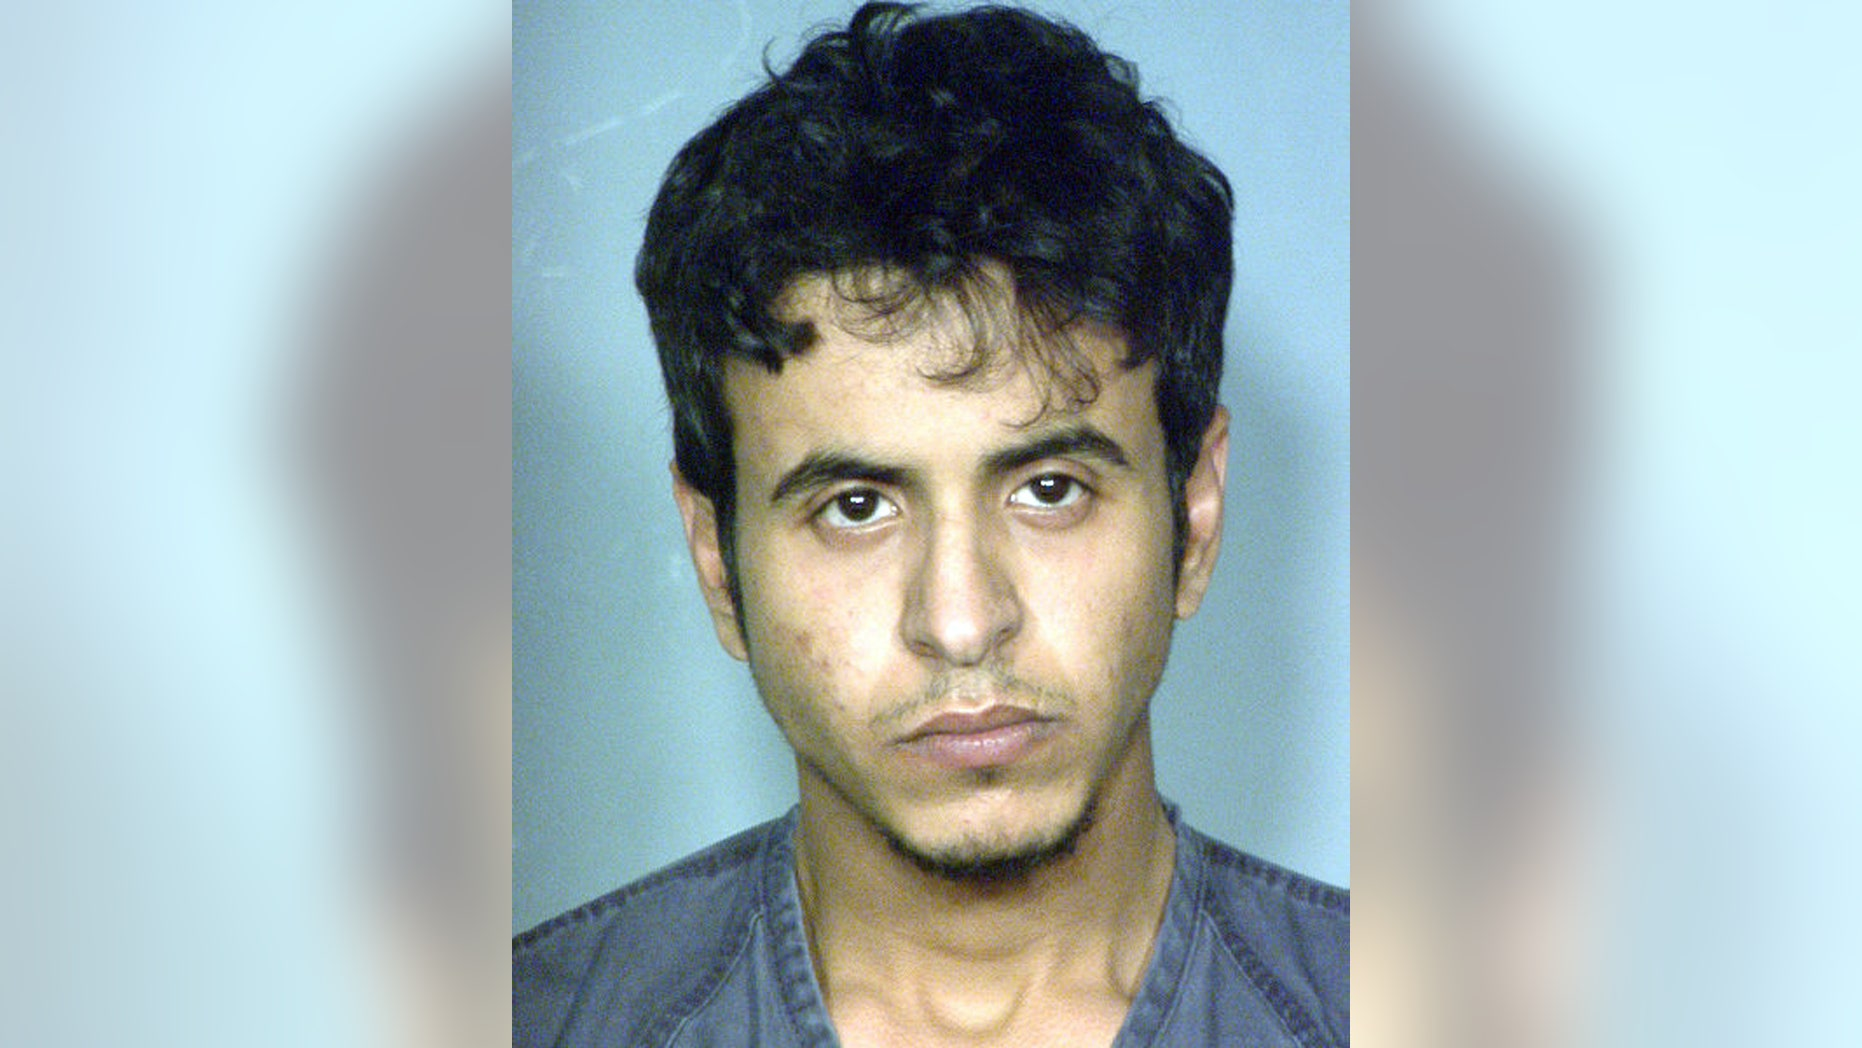 FILE - This file image provided by the Las Vegas Metropolitan Police Department shows Mazen Alotaibi. Alotaibi, 23, a sergeant in Saudi Arabia's air force, pleaded not guilty Wednesday Feb. 13, 2013, in a Nevada state court to abducting and raping a 13-year-old boy at a Las Vegas Strip hotel on New Year's Eve. (AP Photo/Las Vegas Metropolitan Police Department, File)